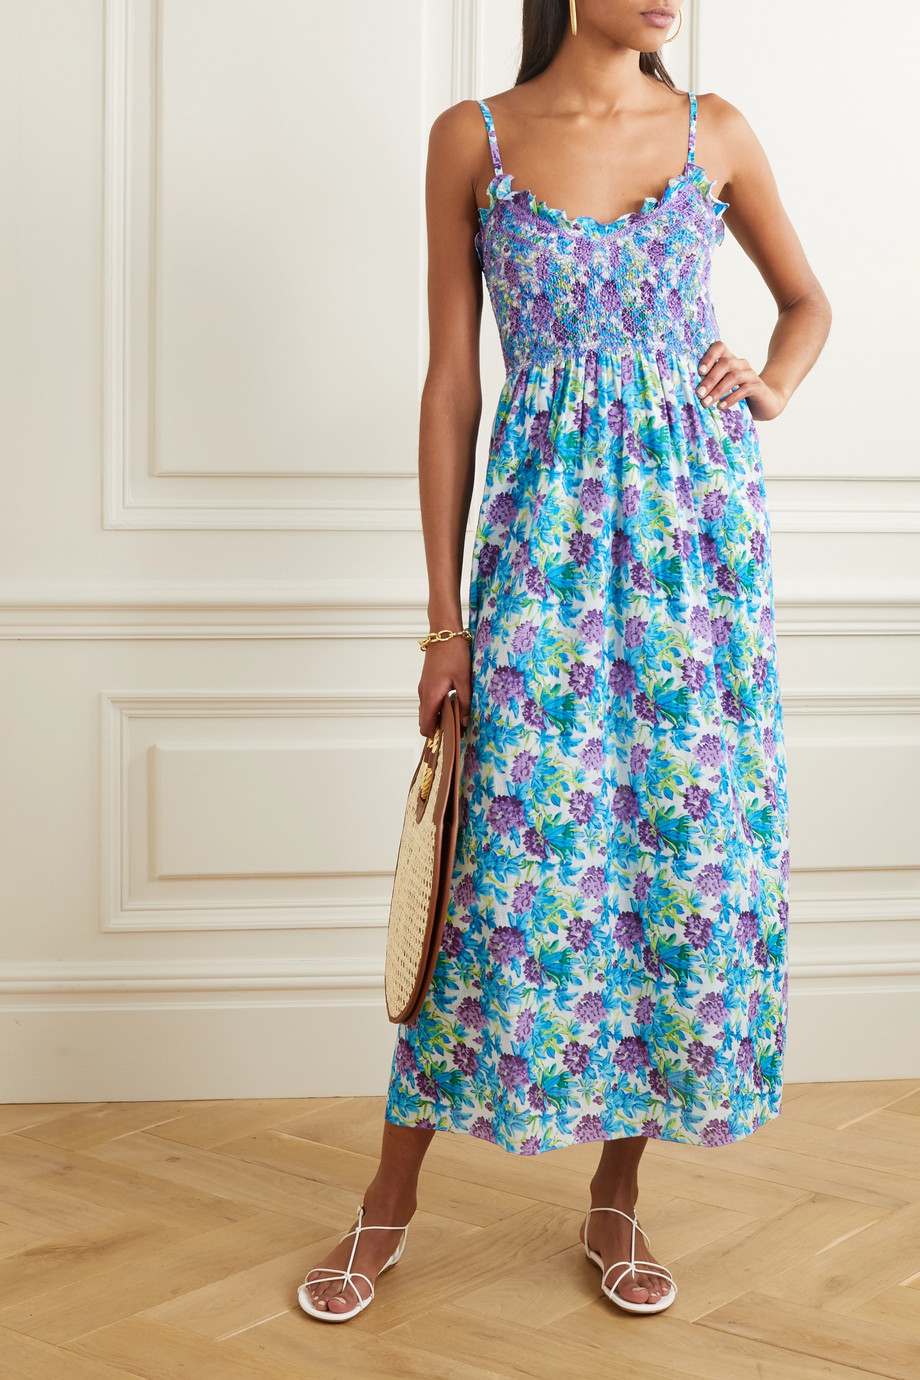 Loretta Caponi Bianca ruffled smocked floral-print cotton-voile midi dress